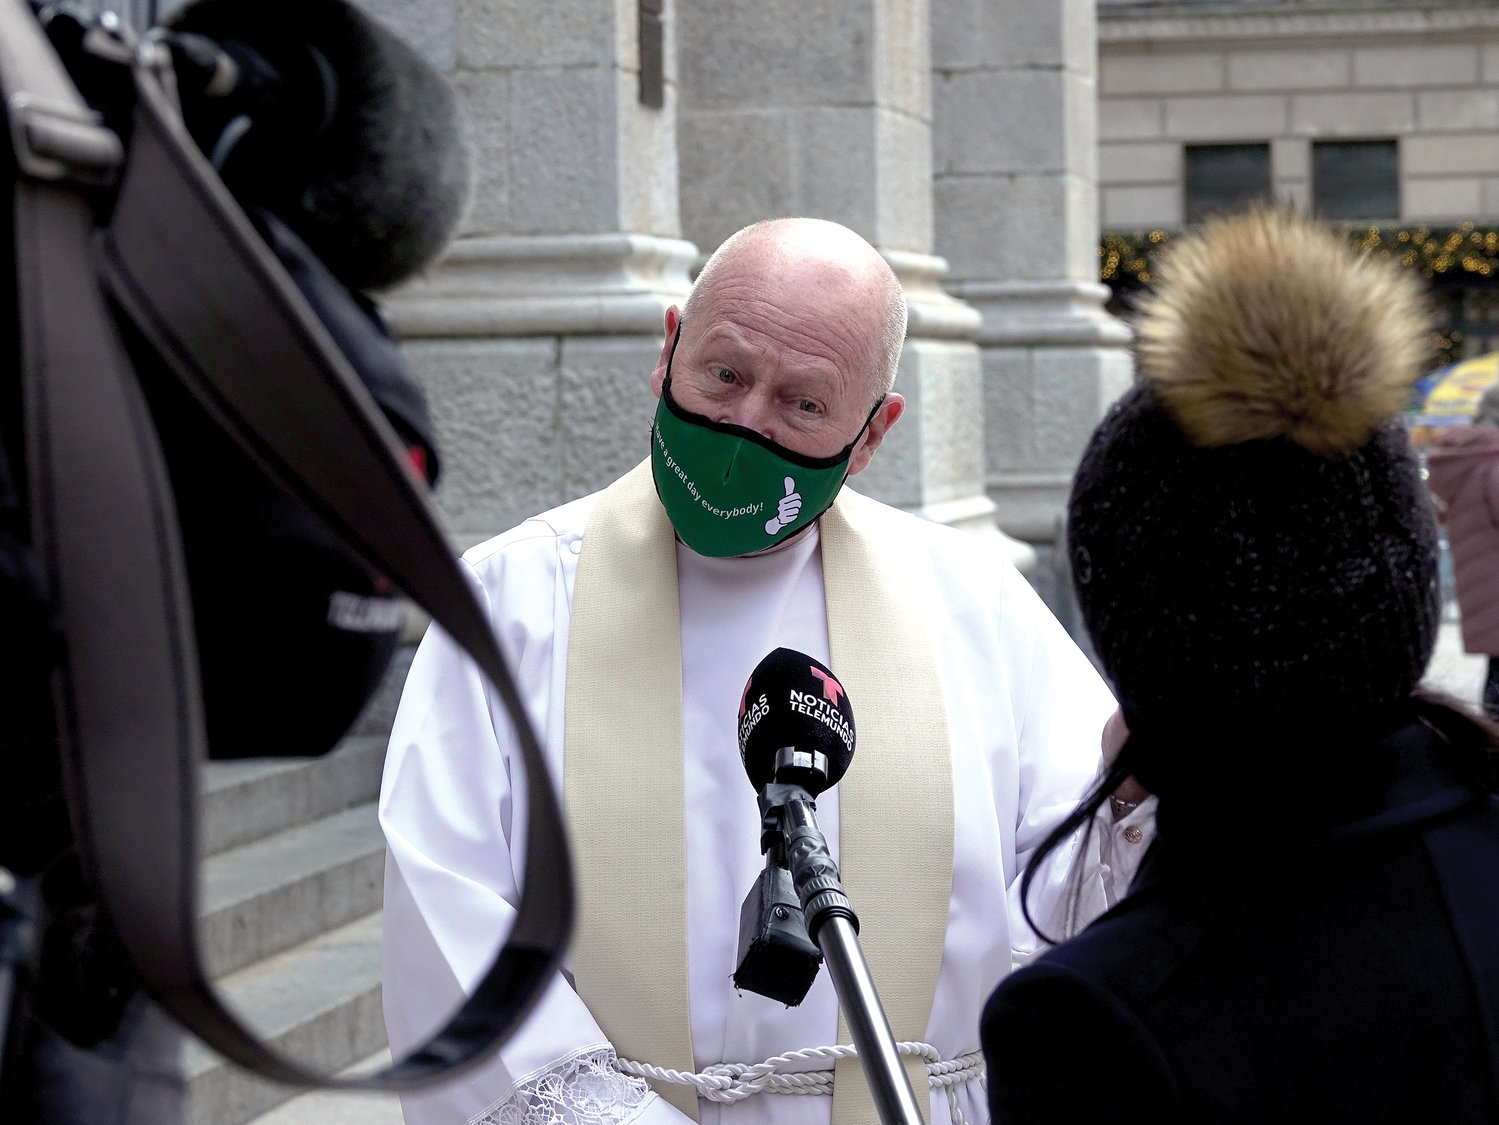 Msgr. Robert Ritchie, rector of St. Patrick's Cathedral, is interviewed on the cathedral steps.